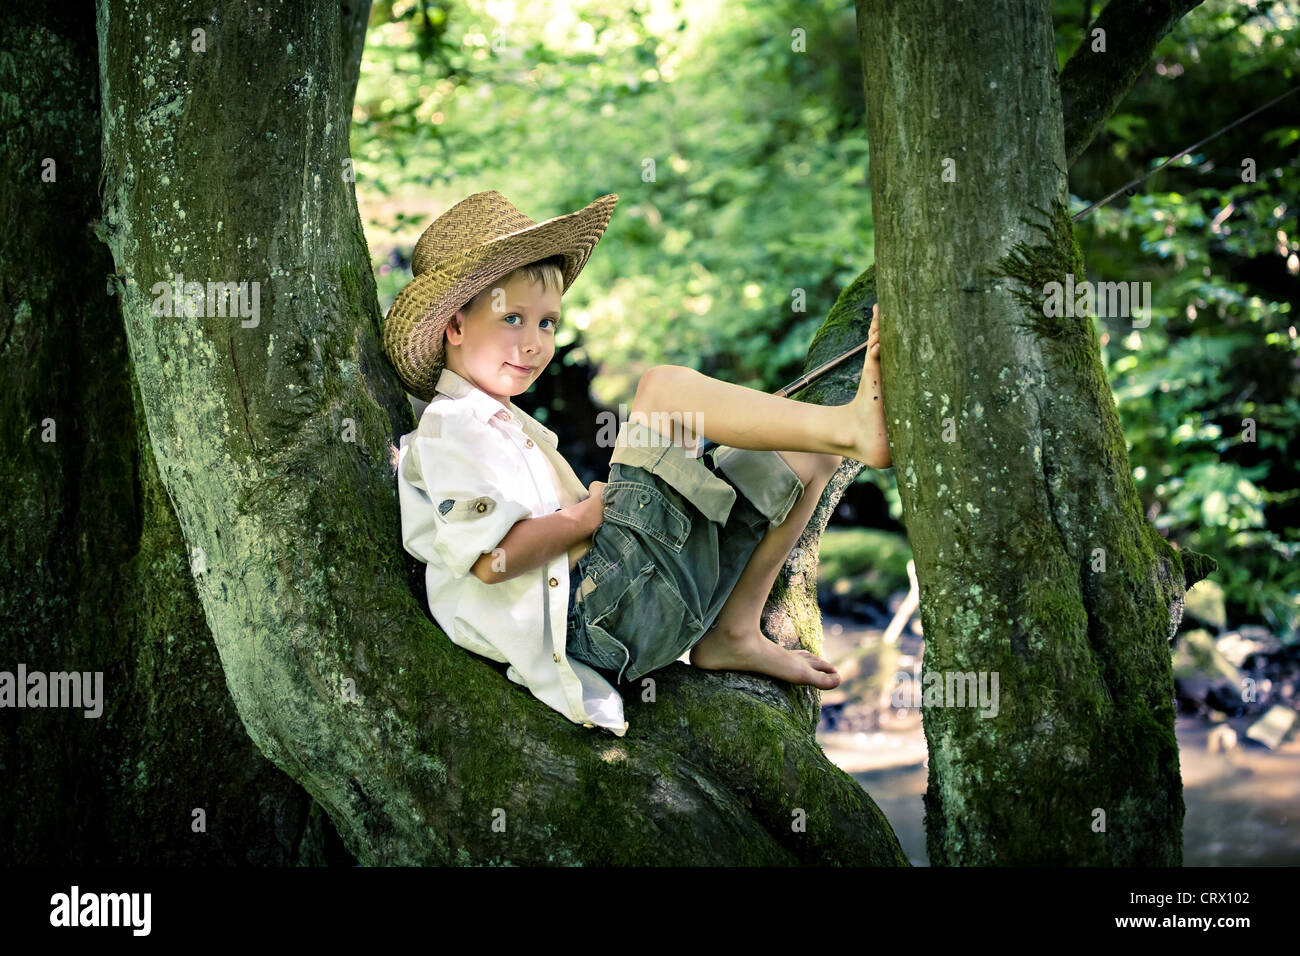 outdoor portrait of a young fishing boy - Stock Image